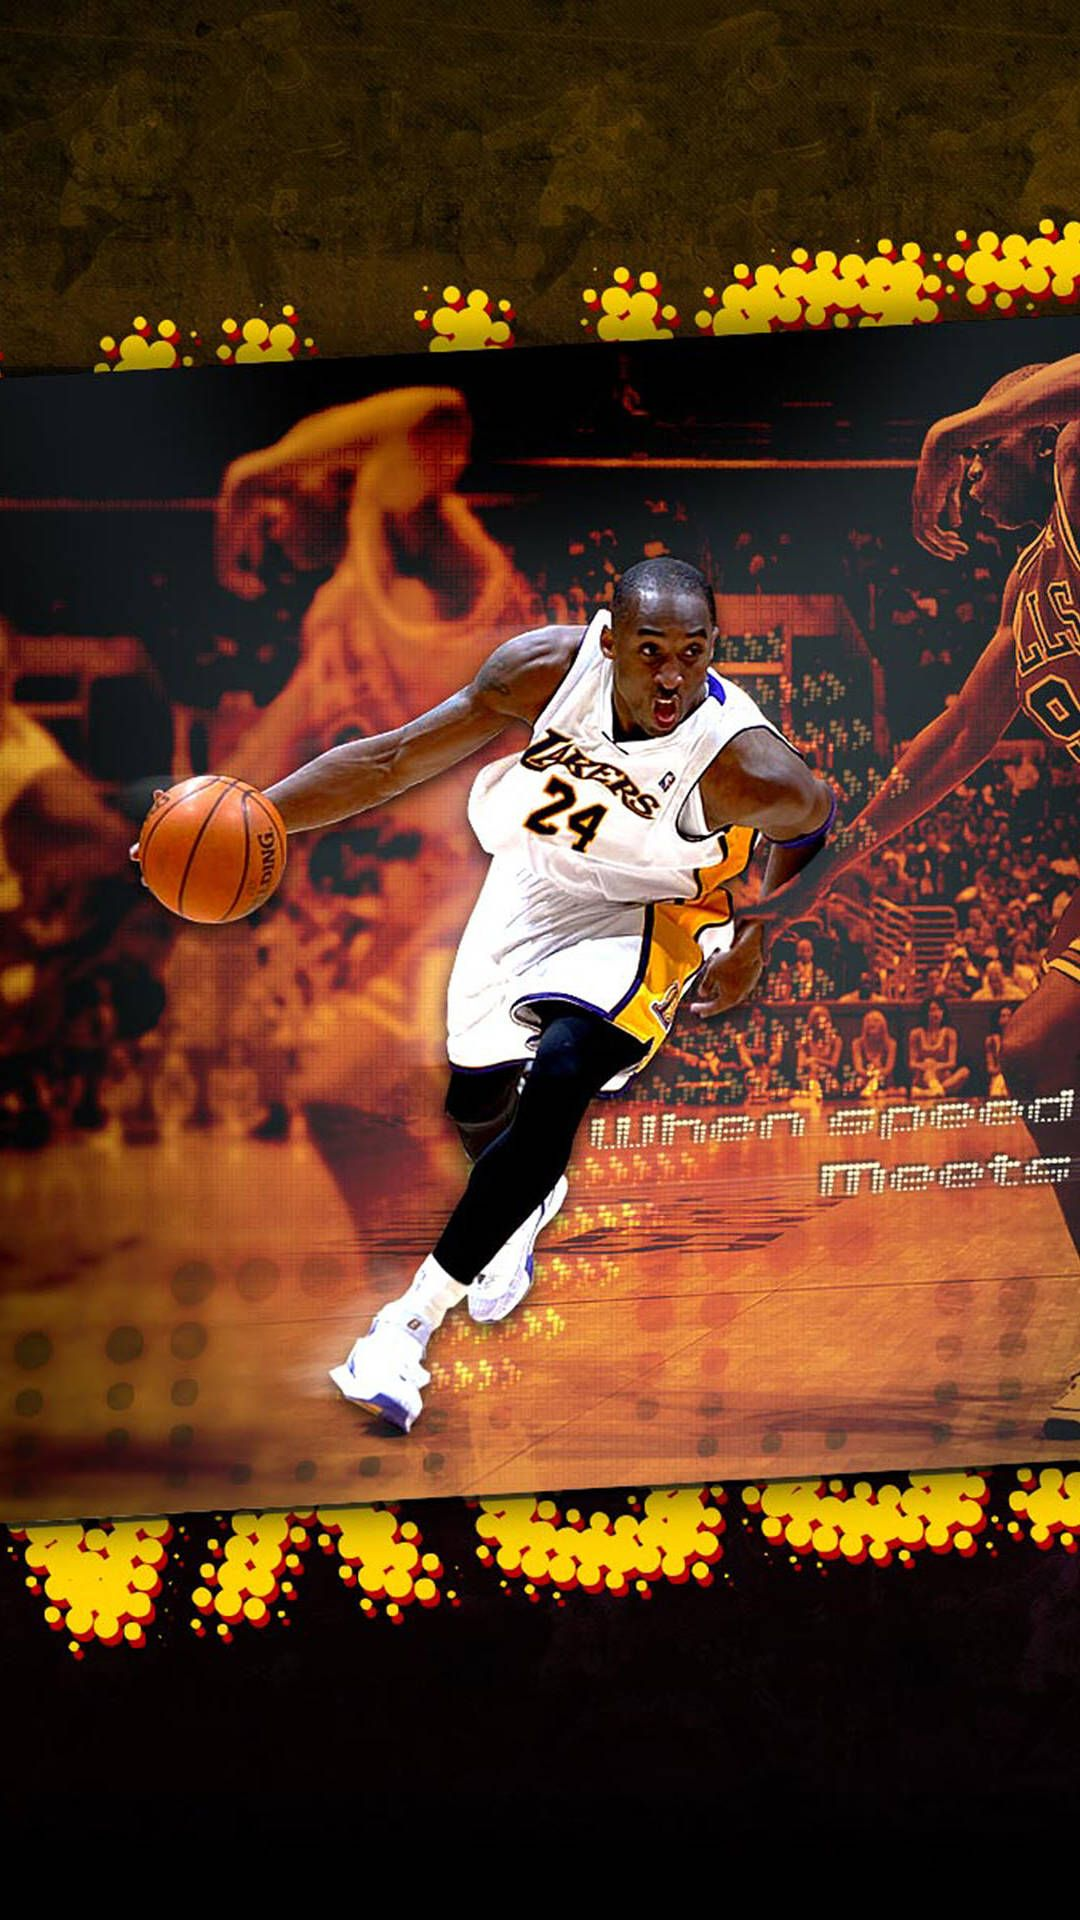 Black Mamba Kobe Bryant Wallpaper Iphone in 2020 Kobe